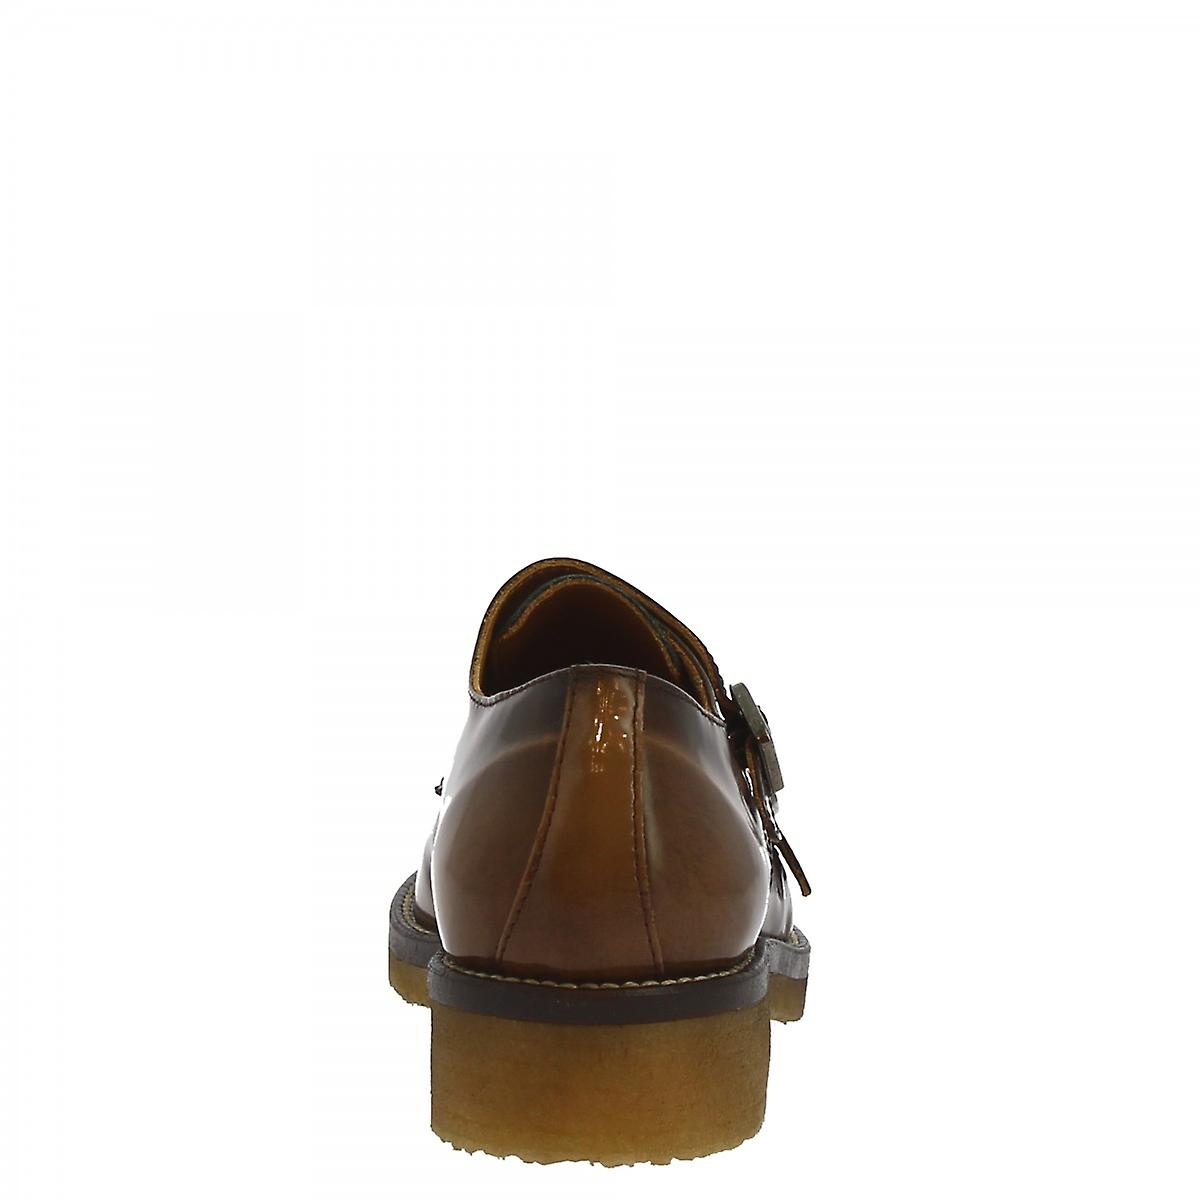 Leonardo Shoes Women's handmade double monks shoes brown brushed calf leather